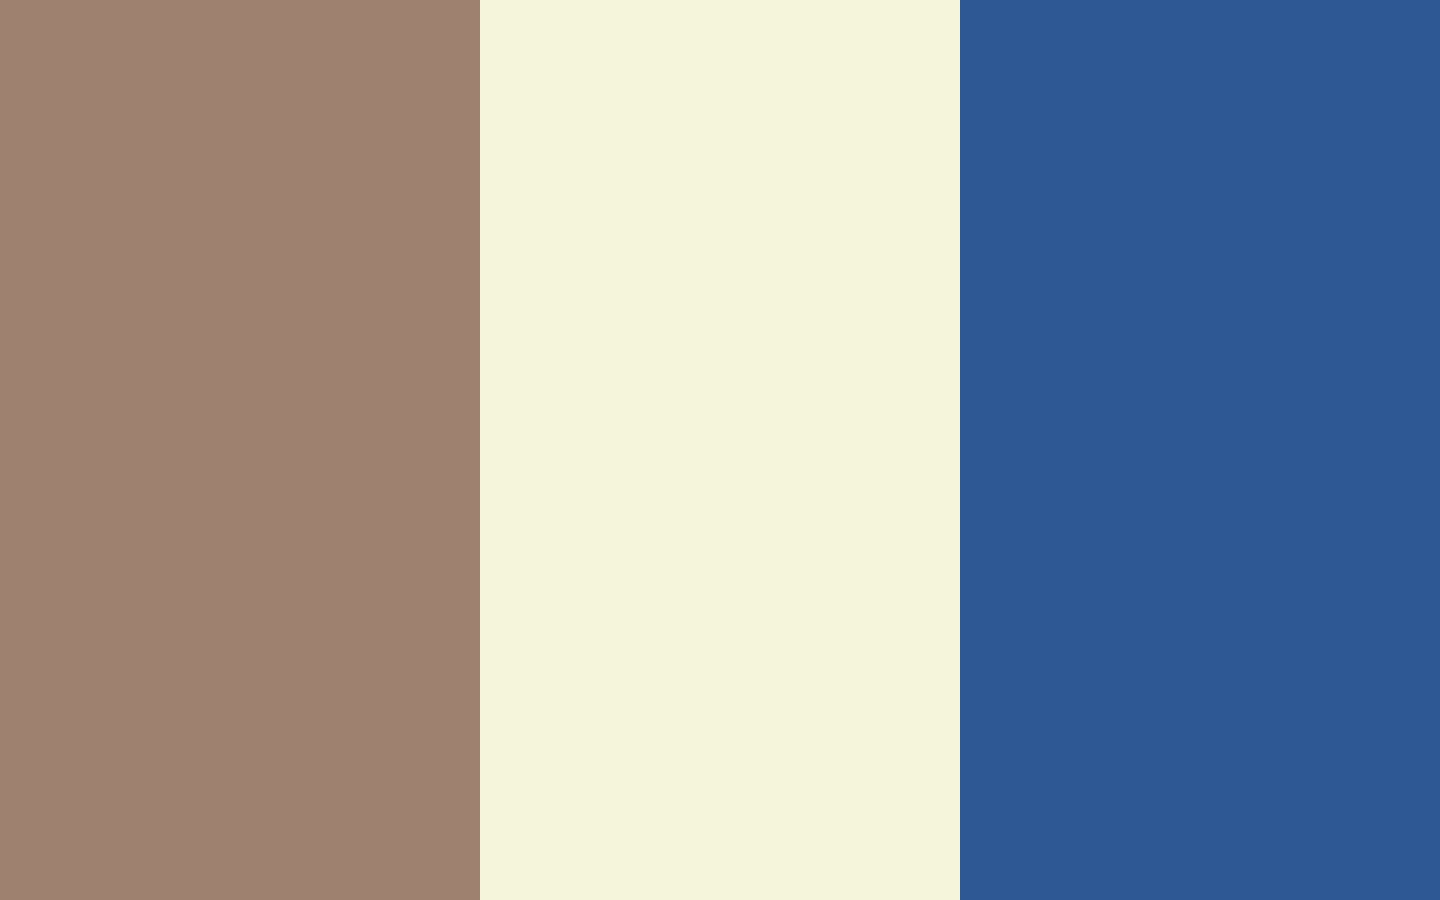 Beaver Beige and Bdazzled Blue solid three color background 1440x900